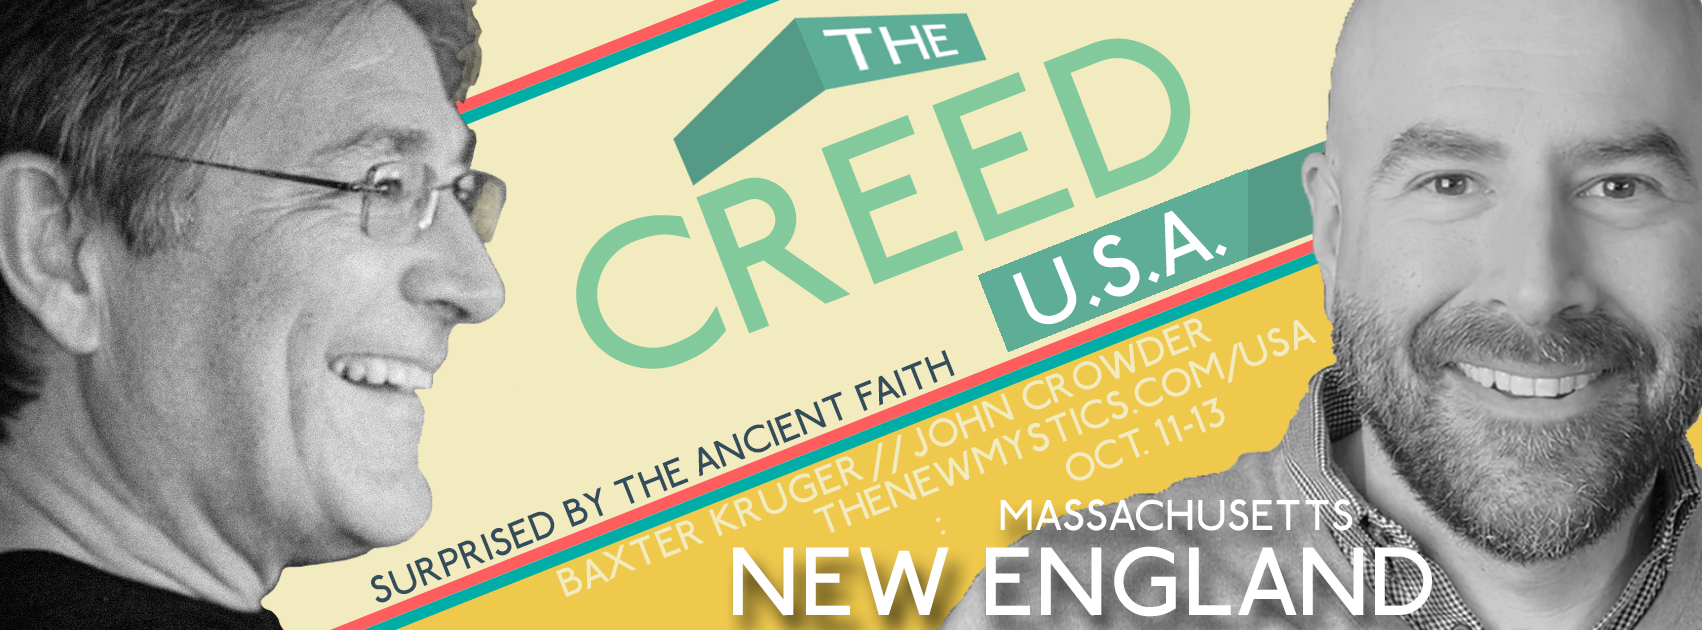 CREED USA